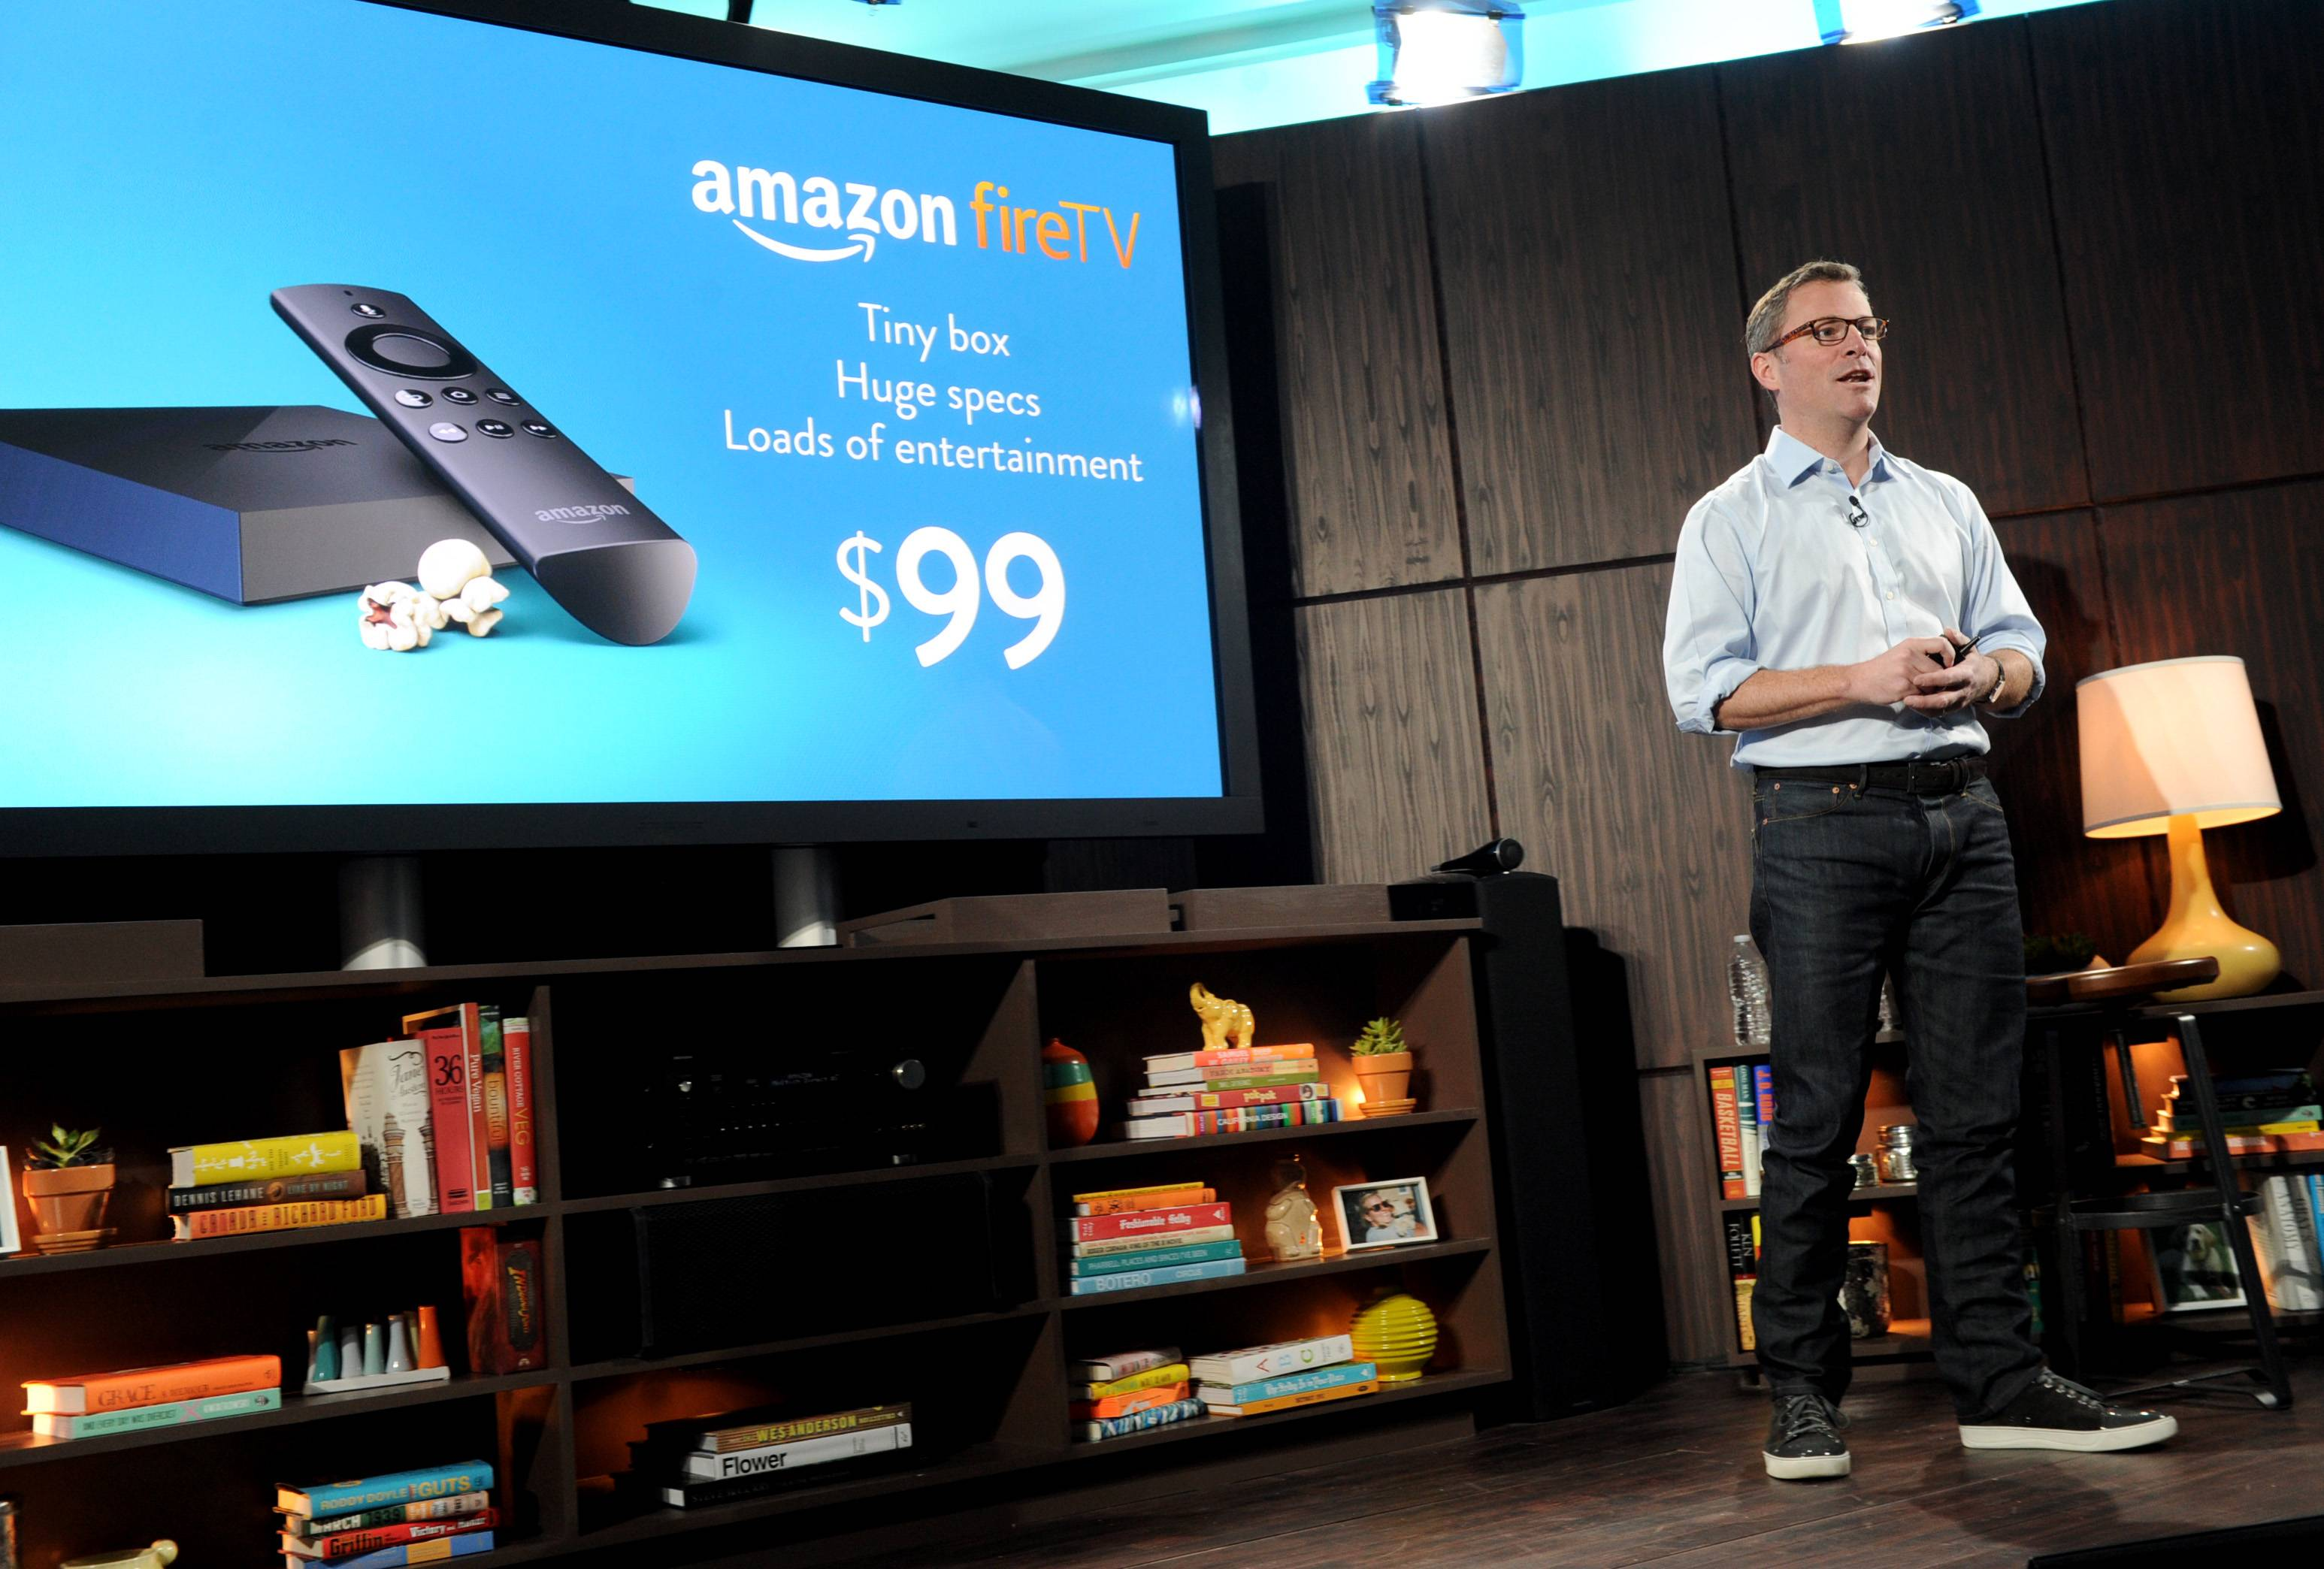 Amazon's Peter Larsen introduces Amazon Fire TV during a news conference in New York.